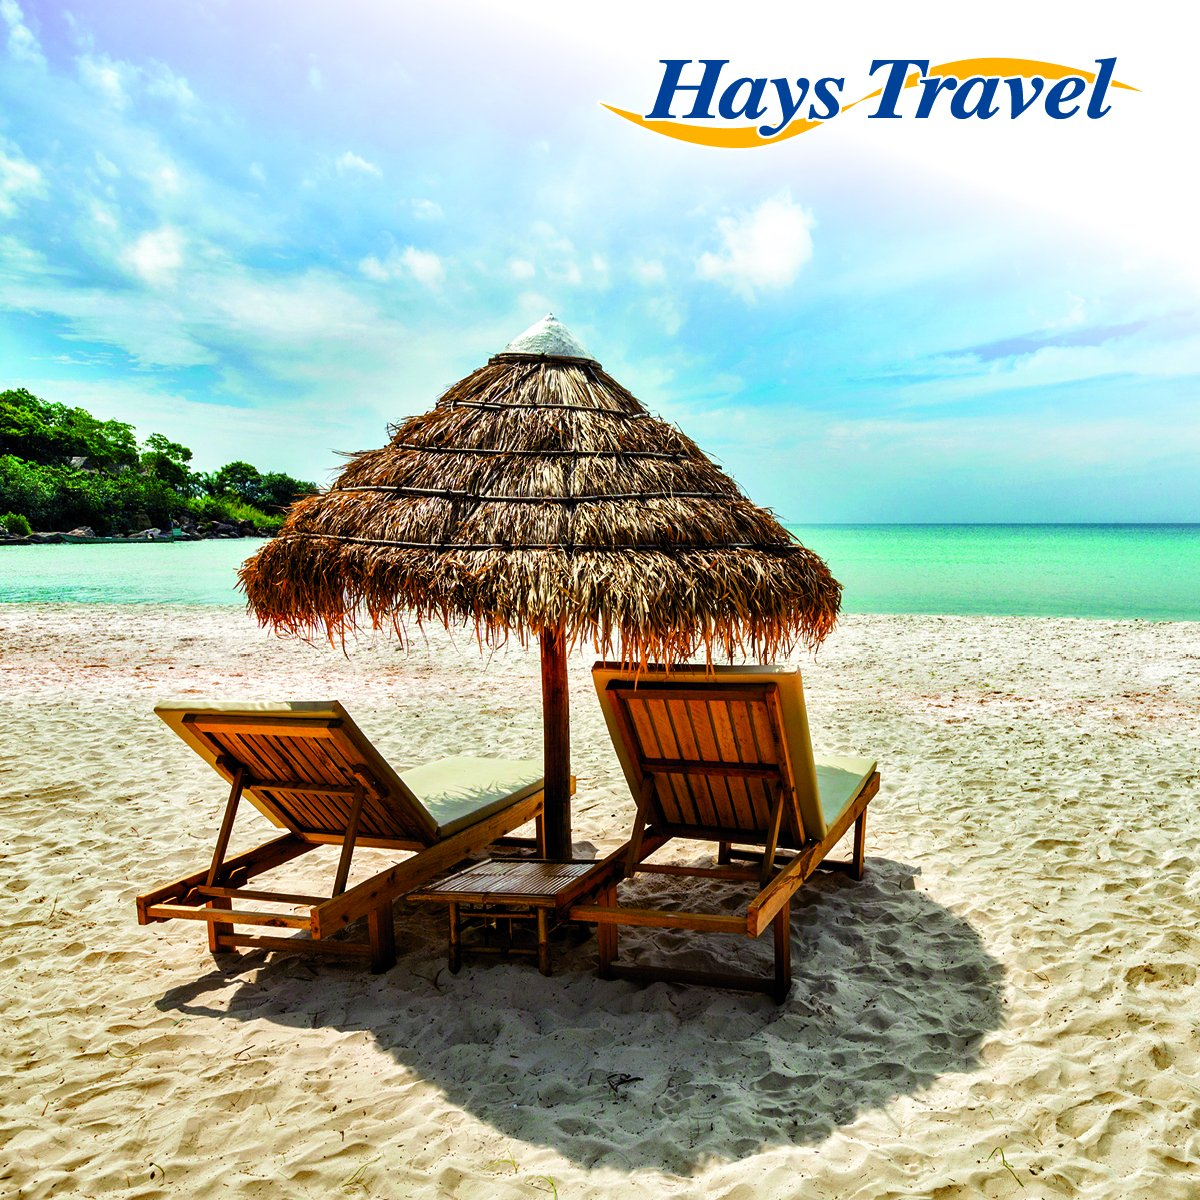 hays travel - photo #23